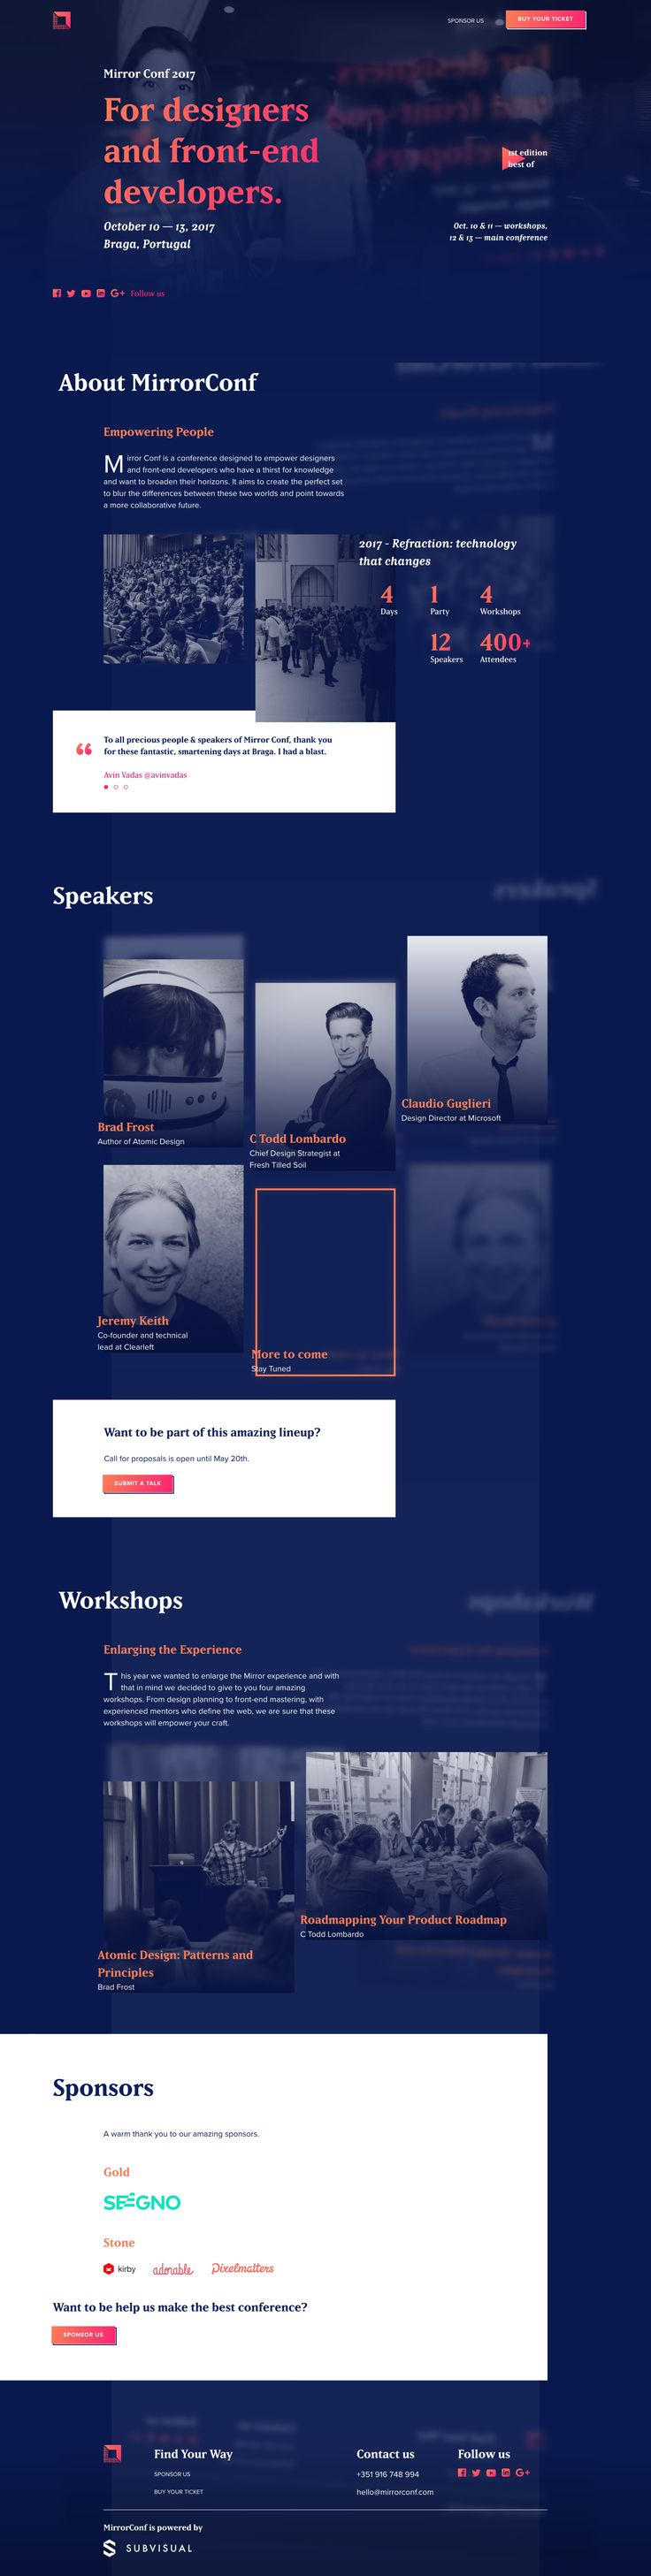 "Long scrolling One Pager for the 2017 'Mirror Conf' to be held in Braga, Portugal. The Single Page website features an interesting ""mirrored content"" blurred background effect to tie in with the branding."